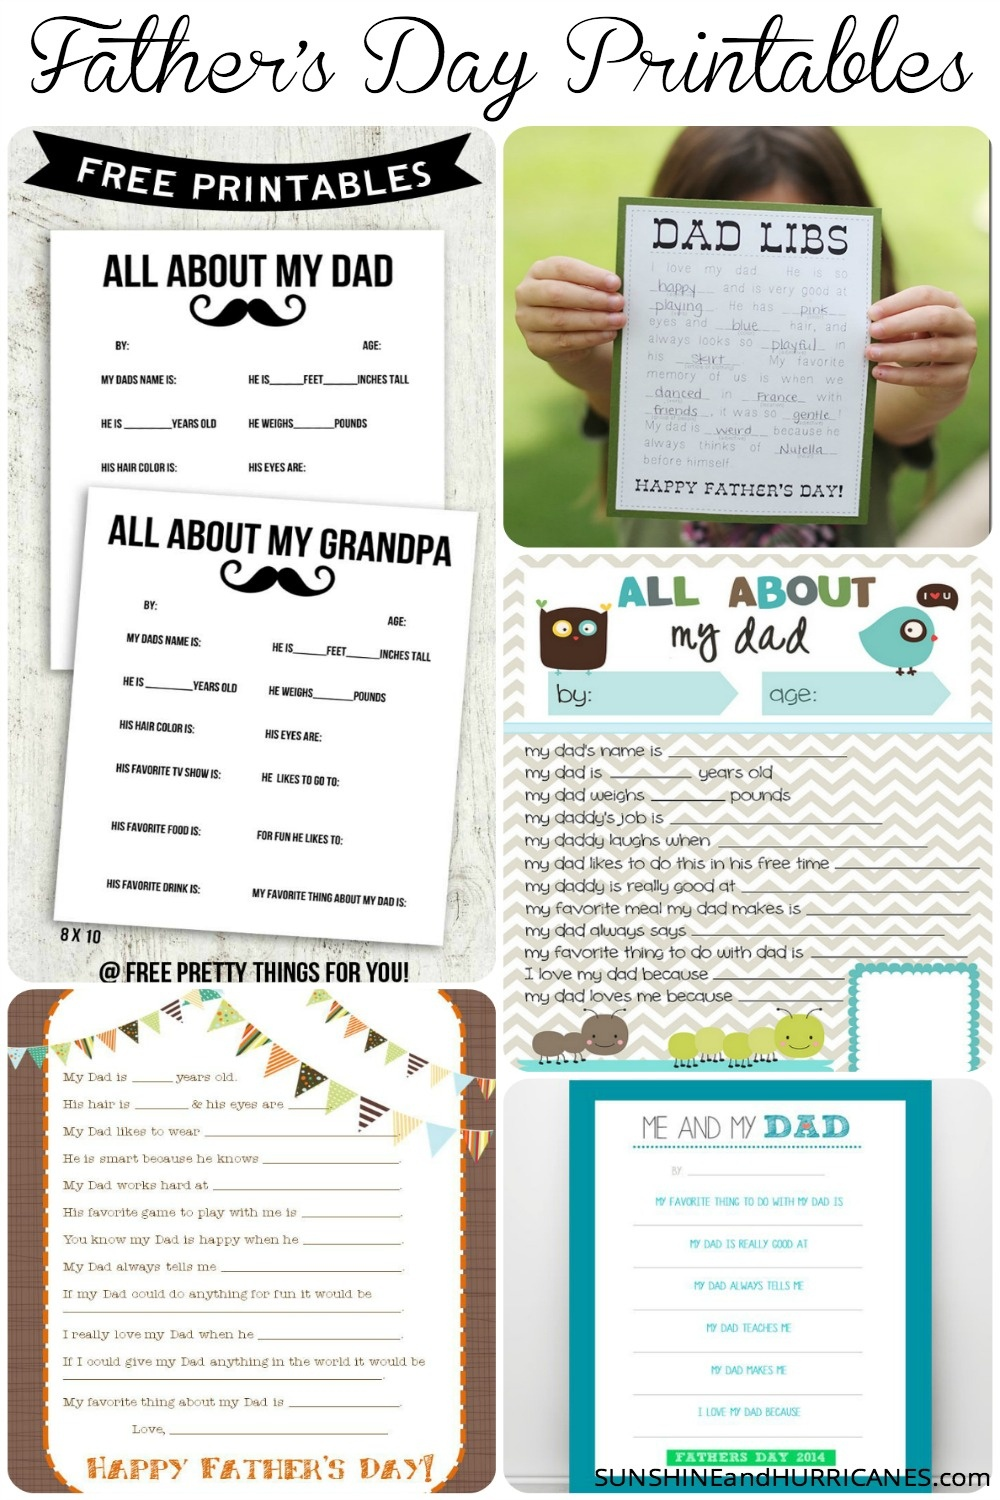 All About My Dad - A Printable Father's Day Questionnaire - Free Printable Dad Questionnaire